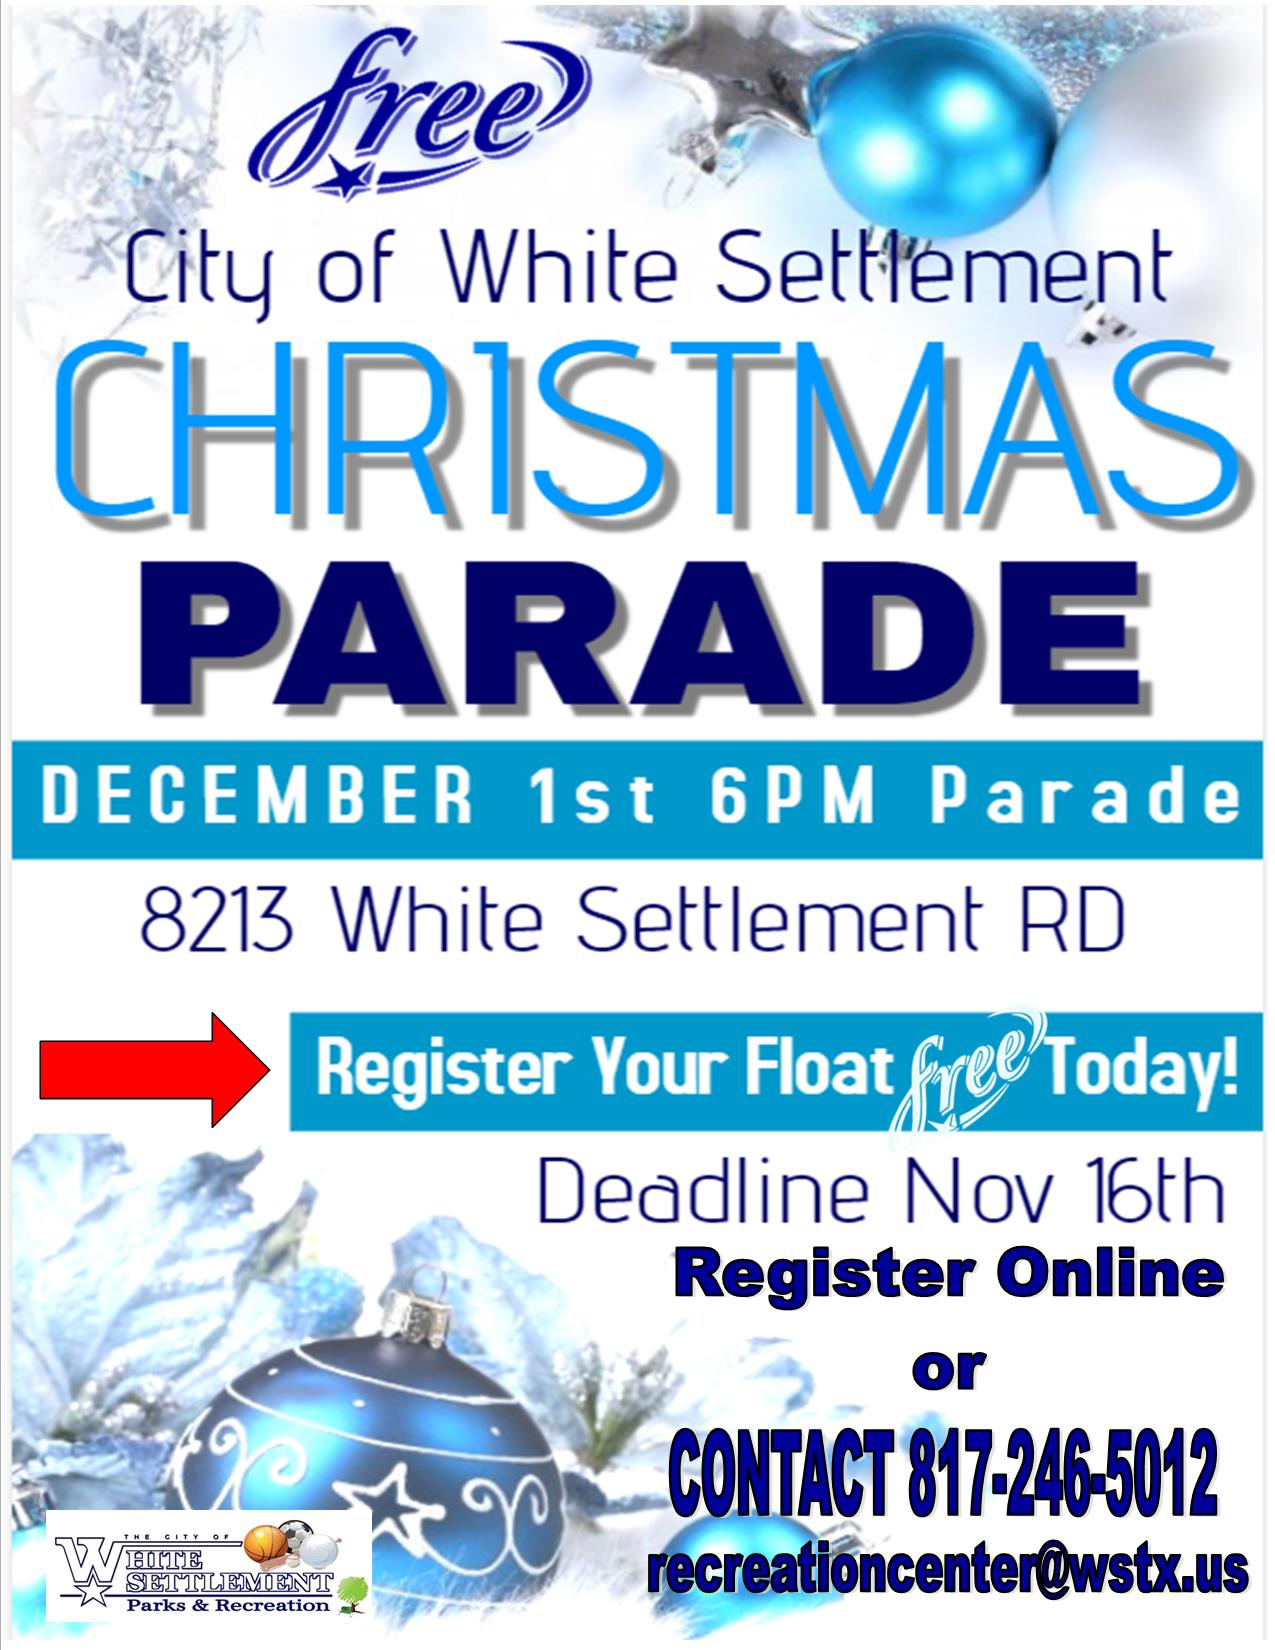 flyer showcasing the upcoming Christmas parade